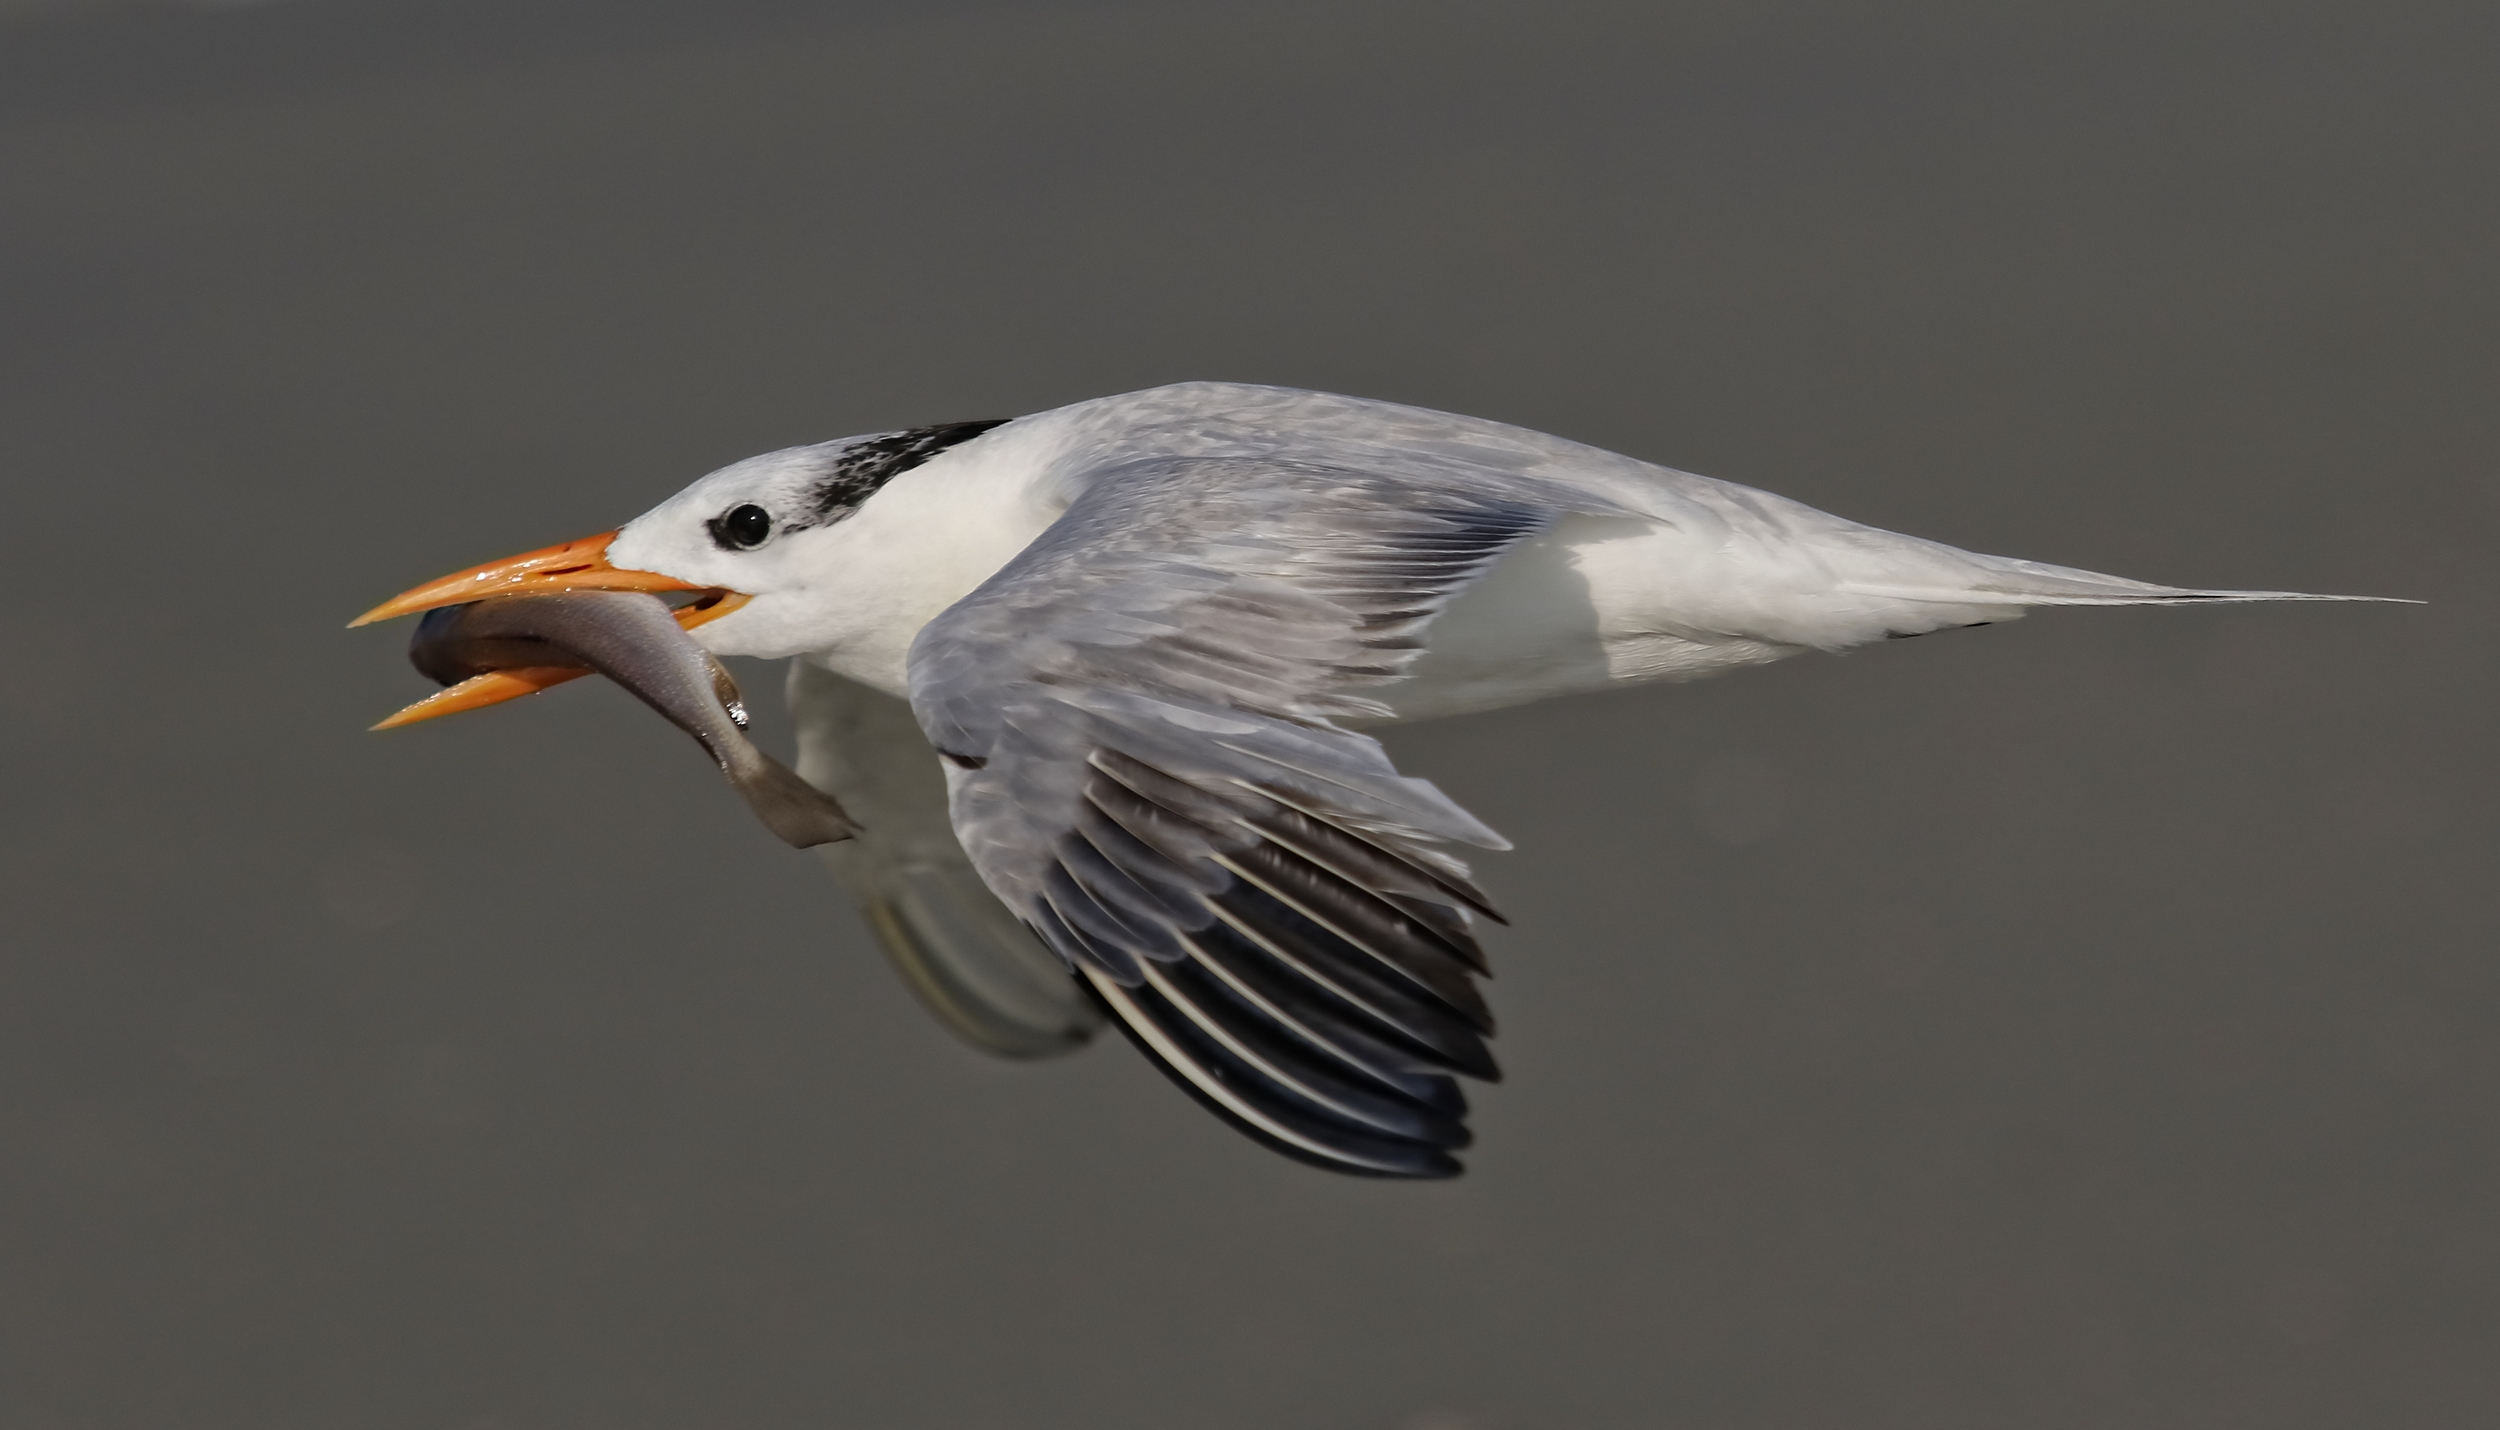 Filling the frame..an adult Royal Tern with a large fish flies by..real close too!